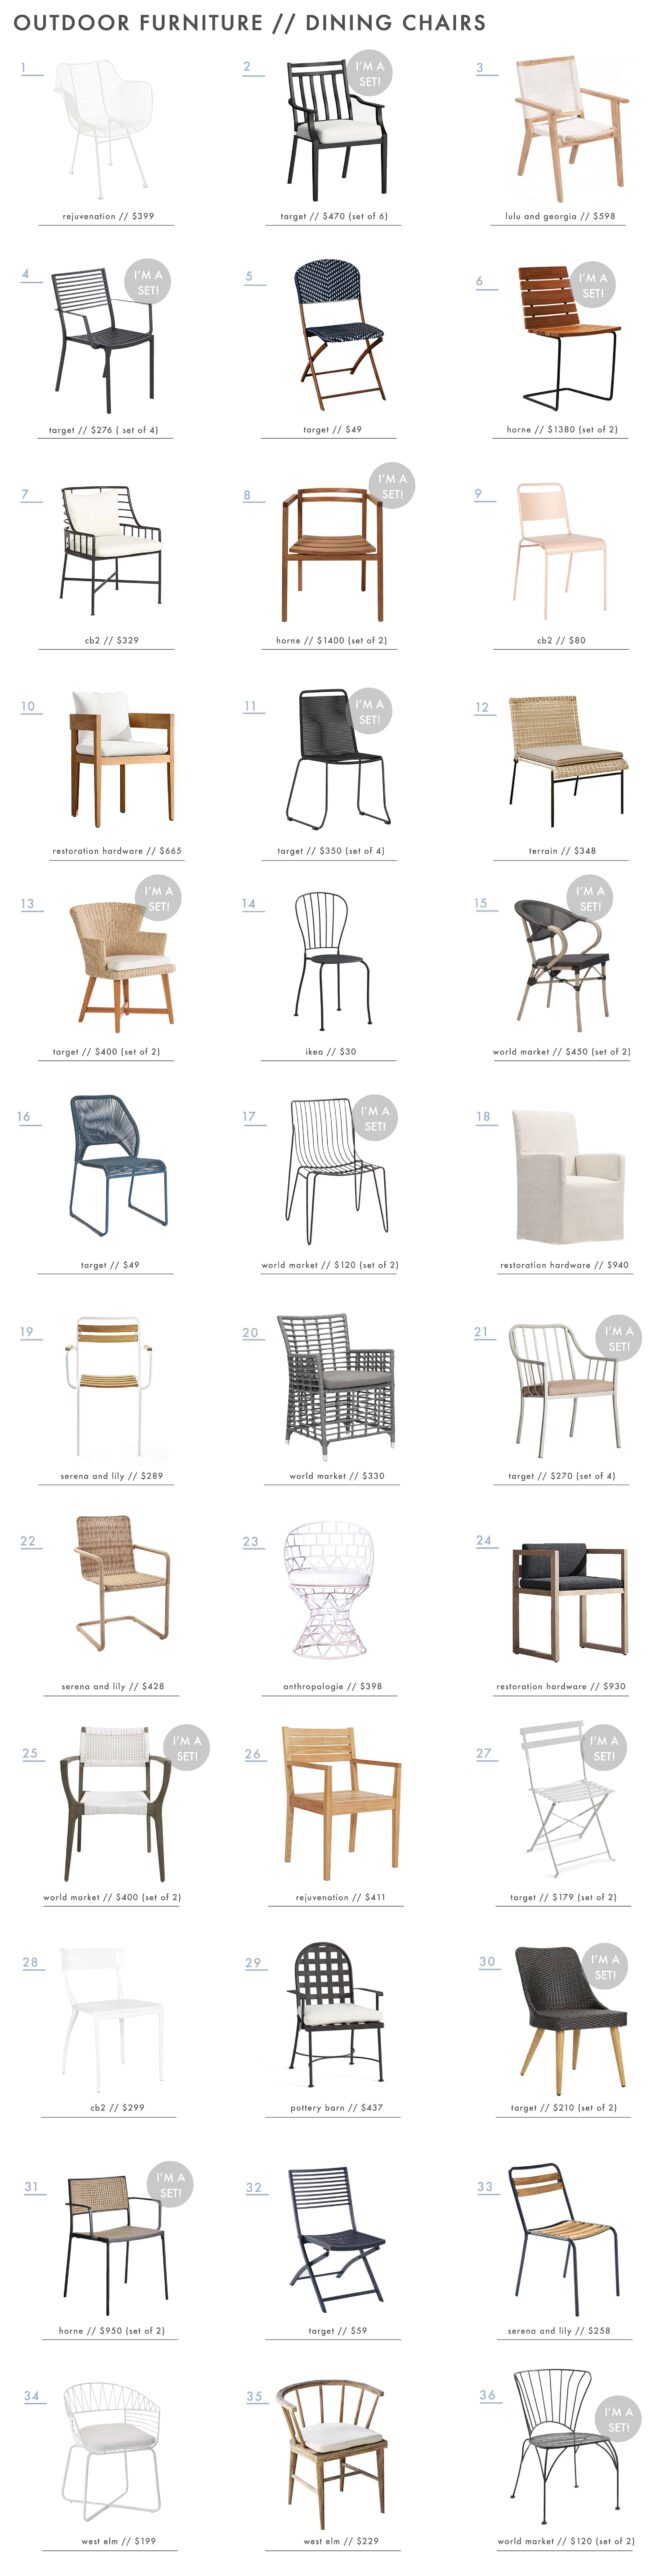 Emily Henderson Outdoor Furniture Dining Chairs Roundup